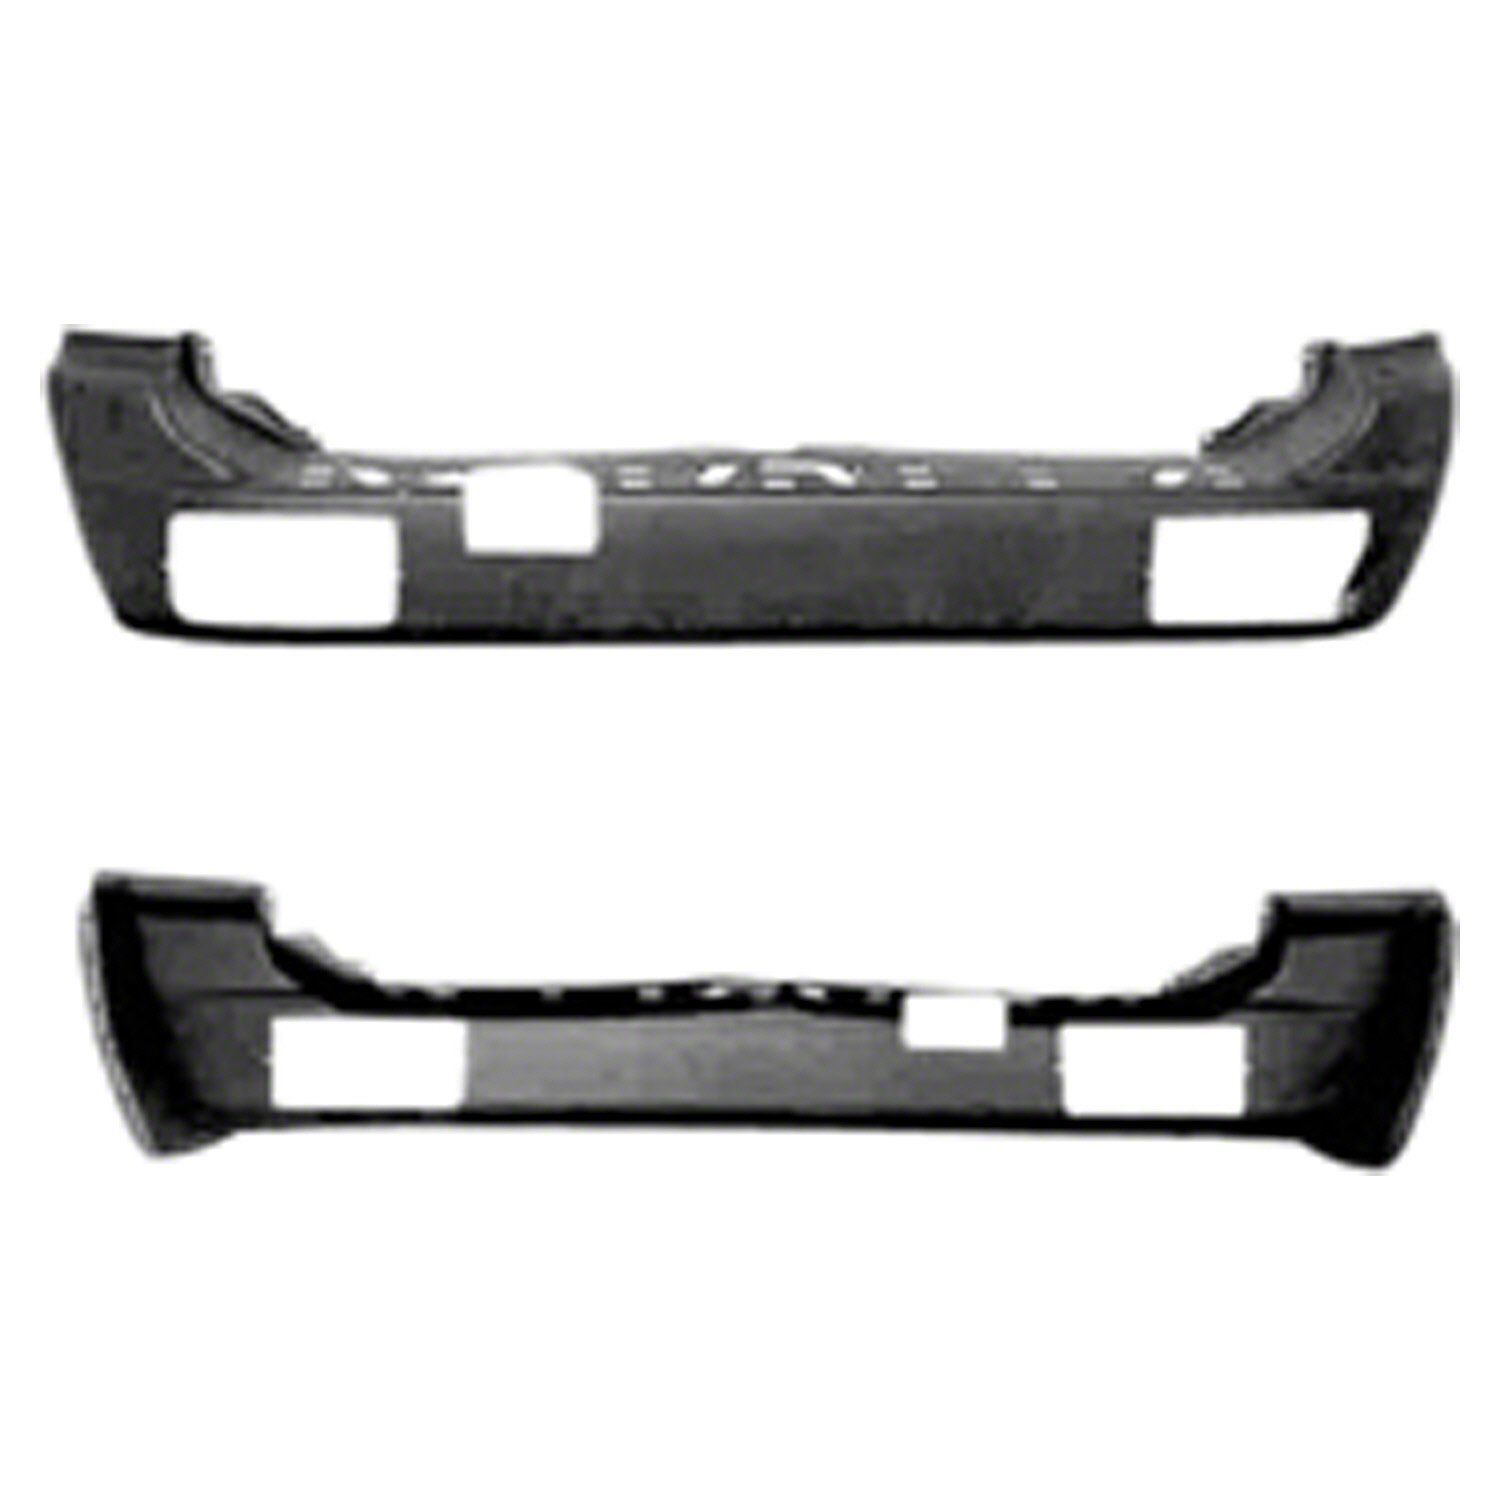 Get Quotations · Crash Parts Plus Crash Parts Plus MI1100252 Rear Bumper  Cover for 97-99 Mitsubishi Montero